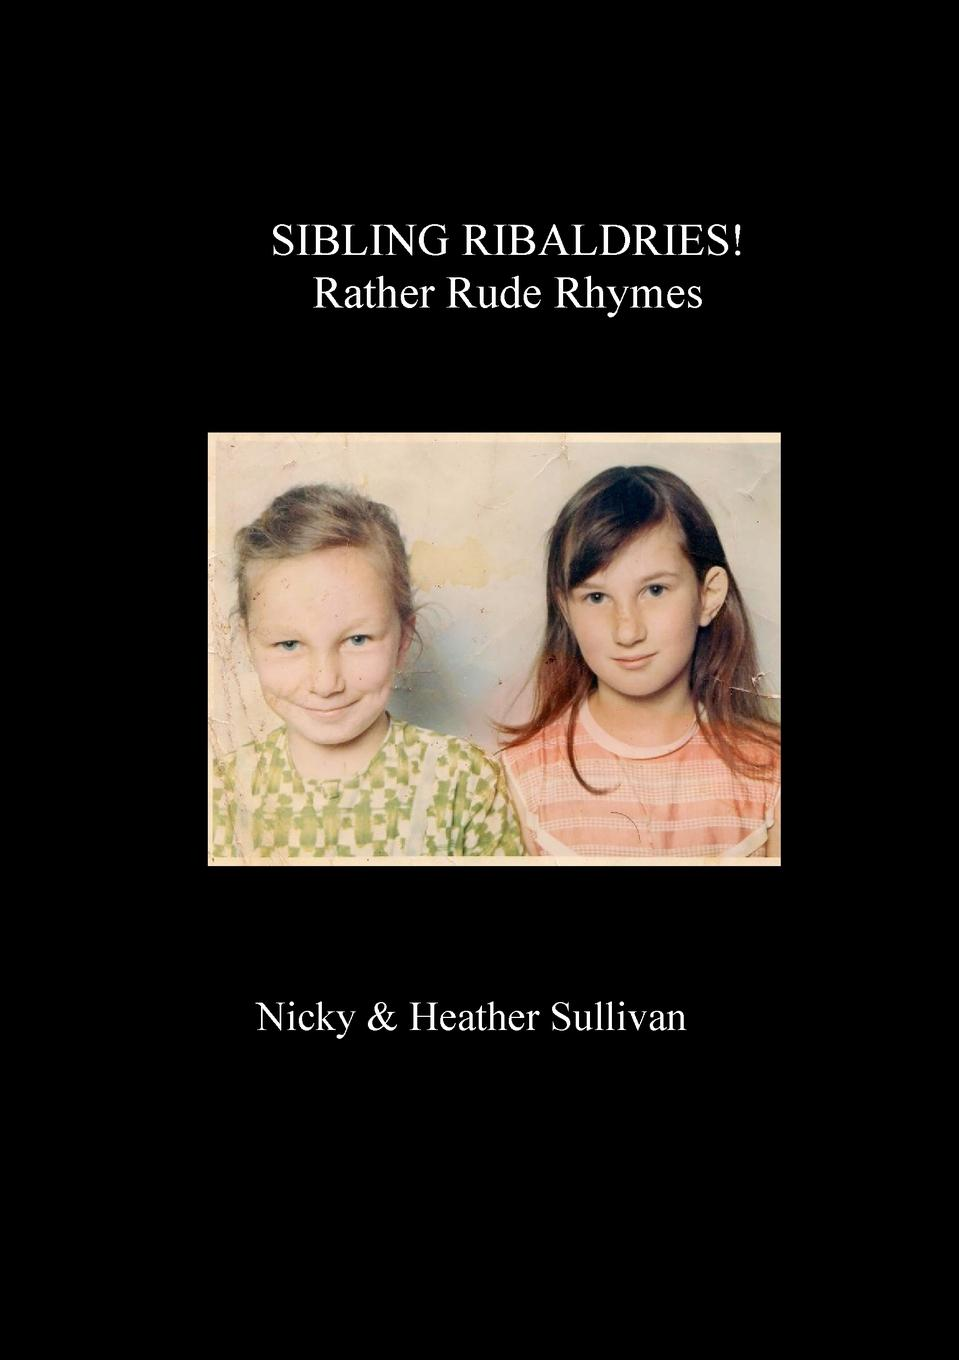 Sibling Ribaldry it time to enjoy the some rather rude rhymes, lift your spirt...